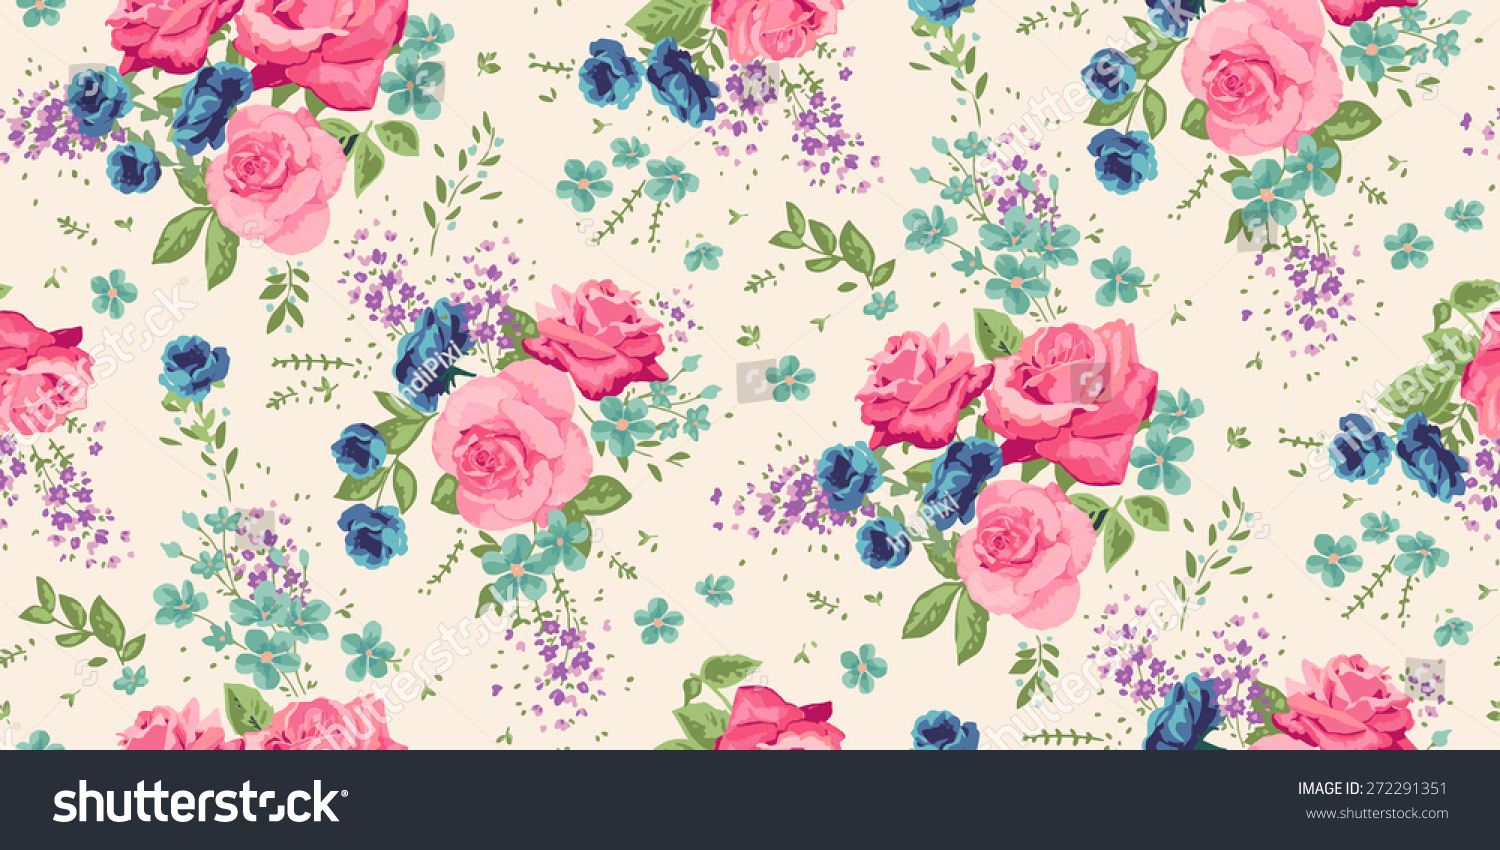 Classic Wallpaper Seamless Vintage Flower Pattern Stock Vector Royalty Free 272291351